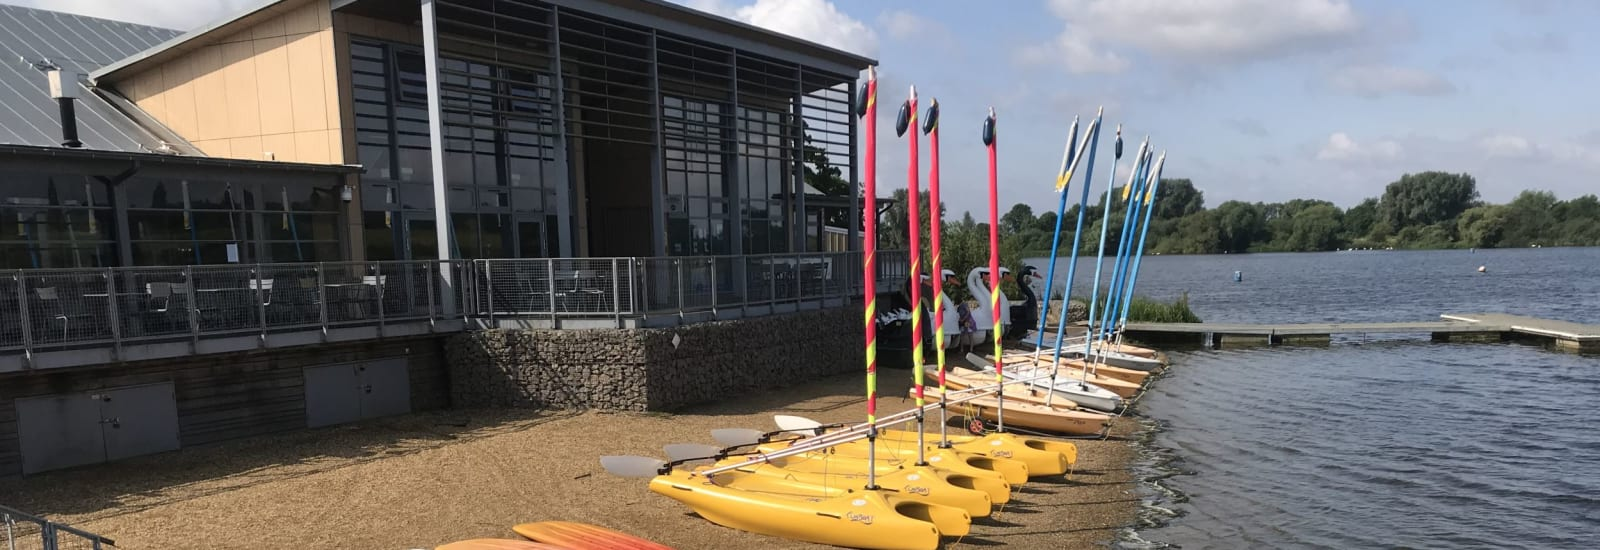 Nene Outdoors watersports and activity centre